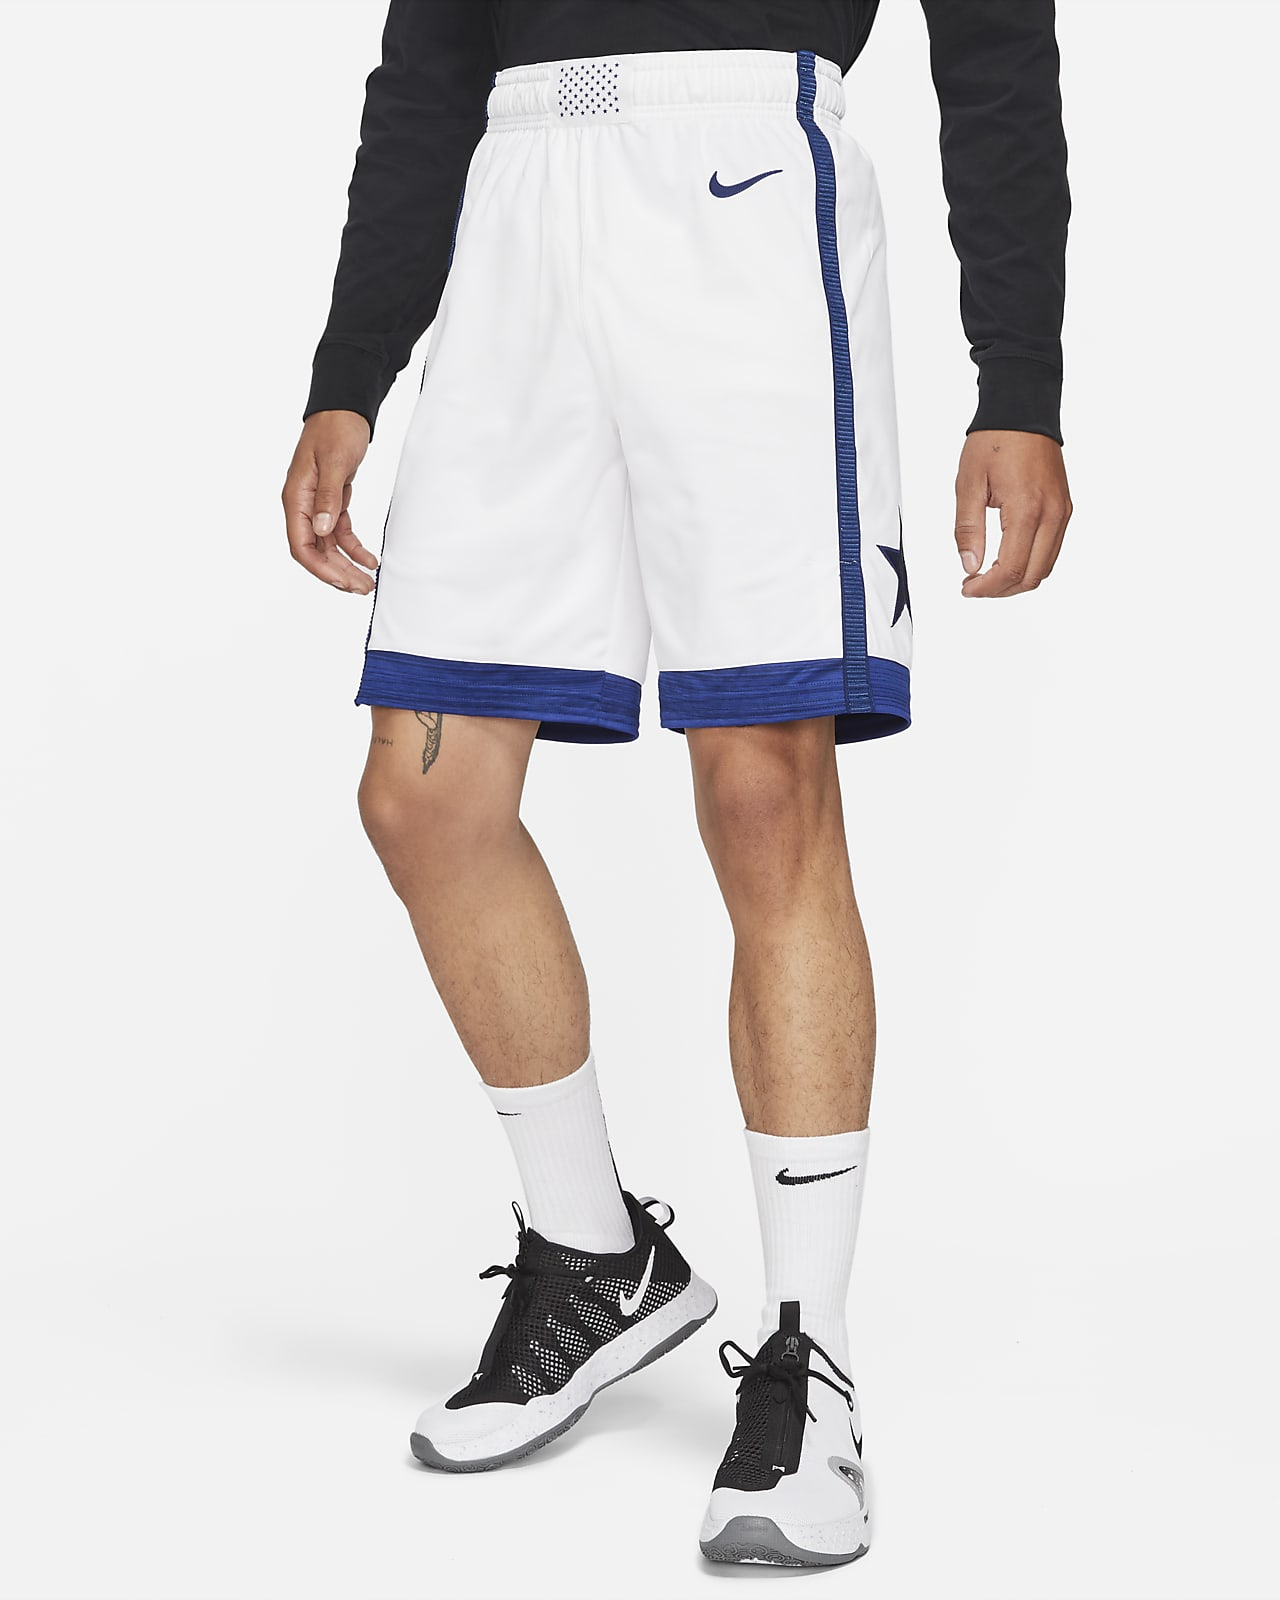 Nike Team USA Authentic (Home) Men's Basketball Shorts